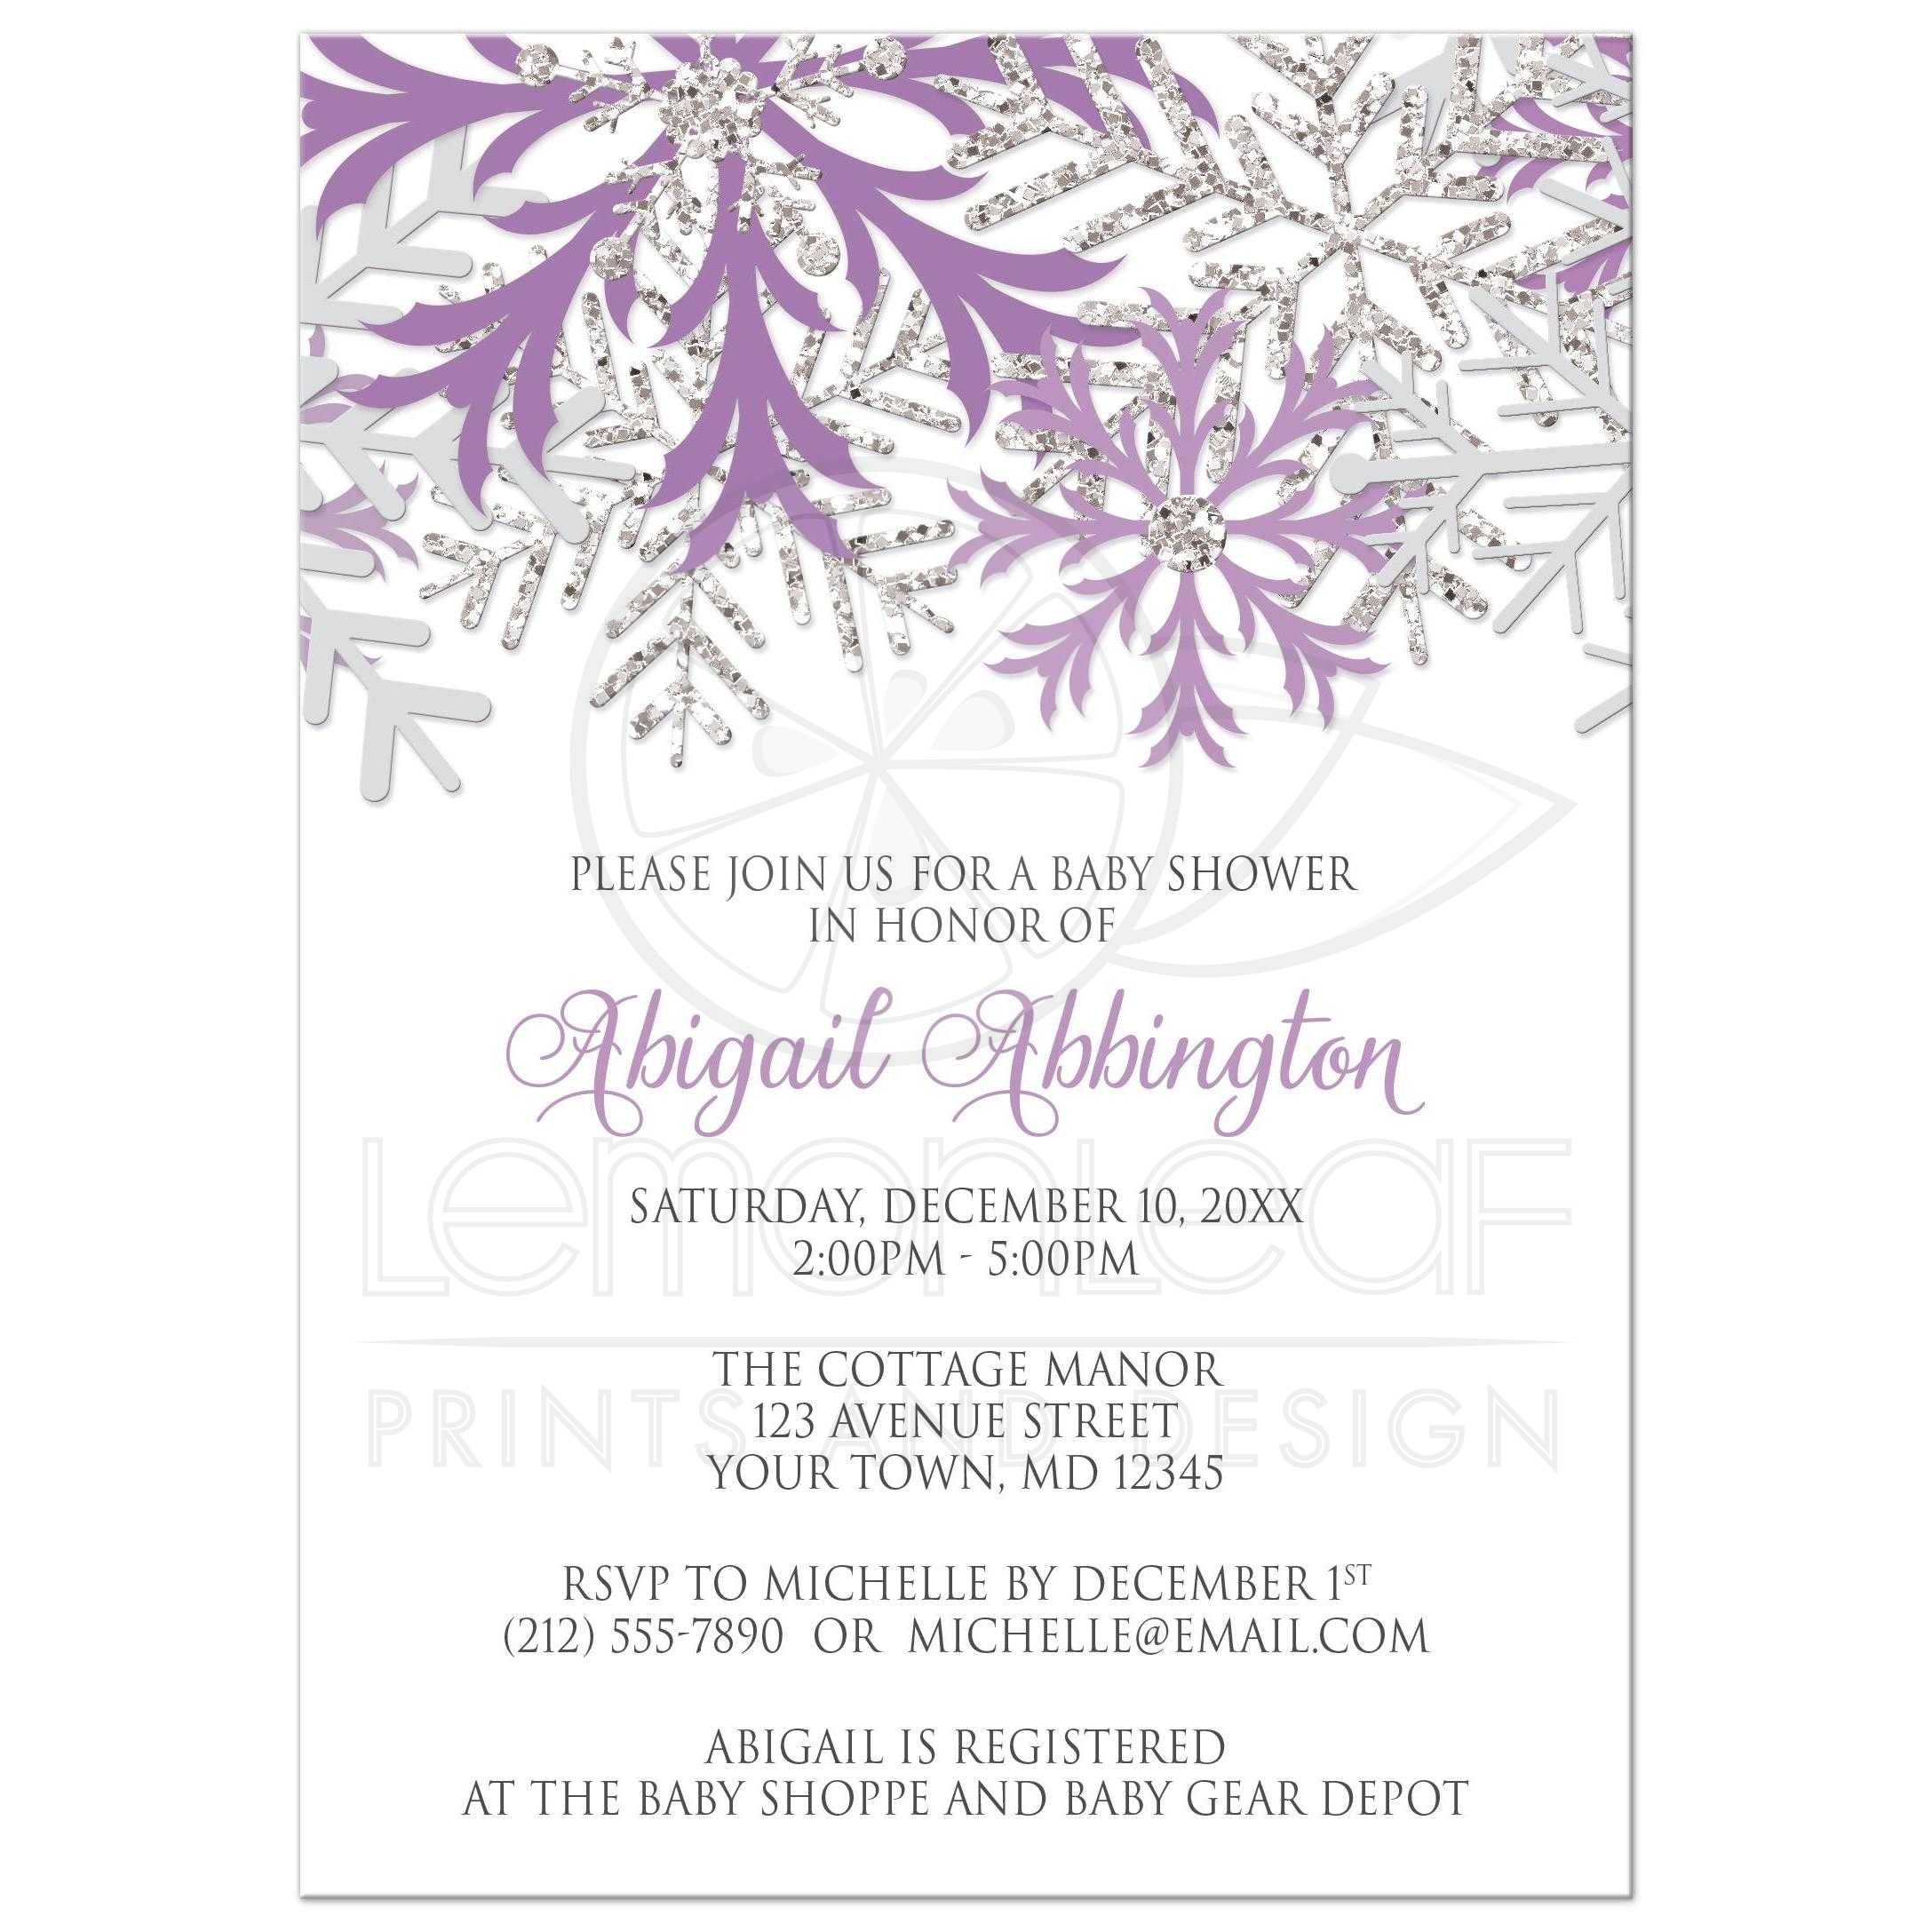 Baby shower invitations winter snowflake purple silver filmwisefo